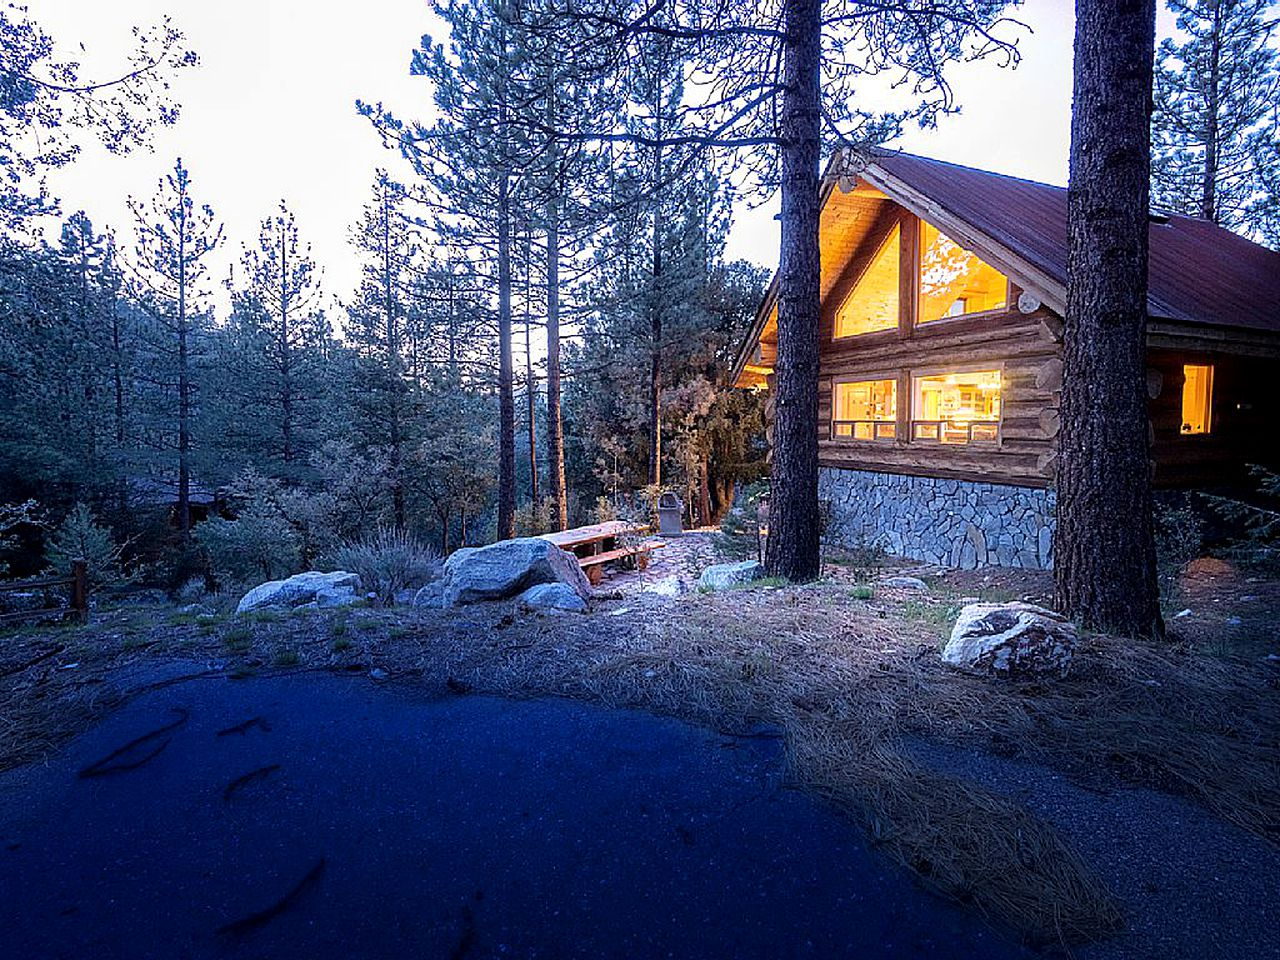 Log Cabins (Pine Mountain Club, California, United States)